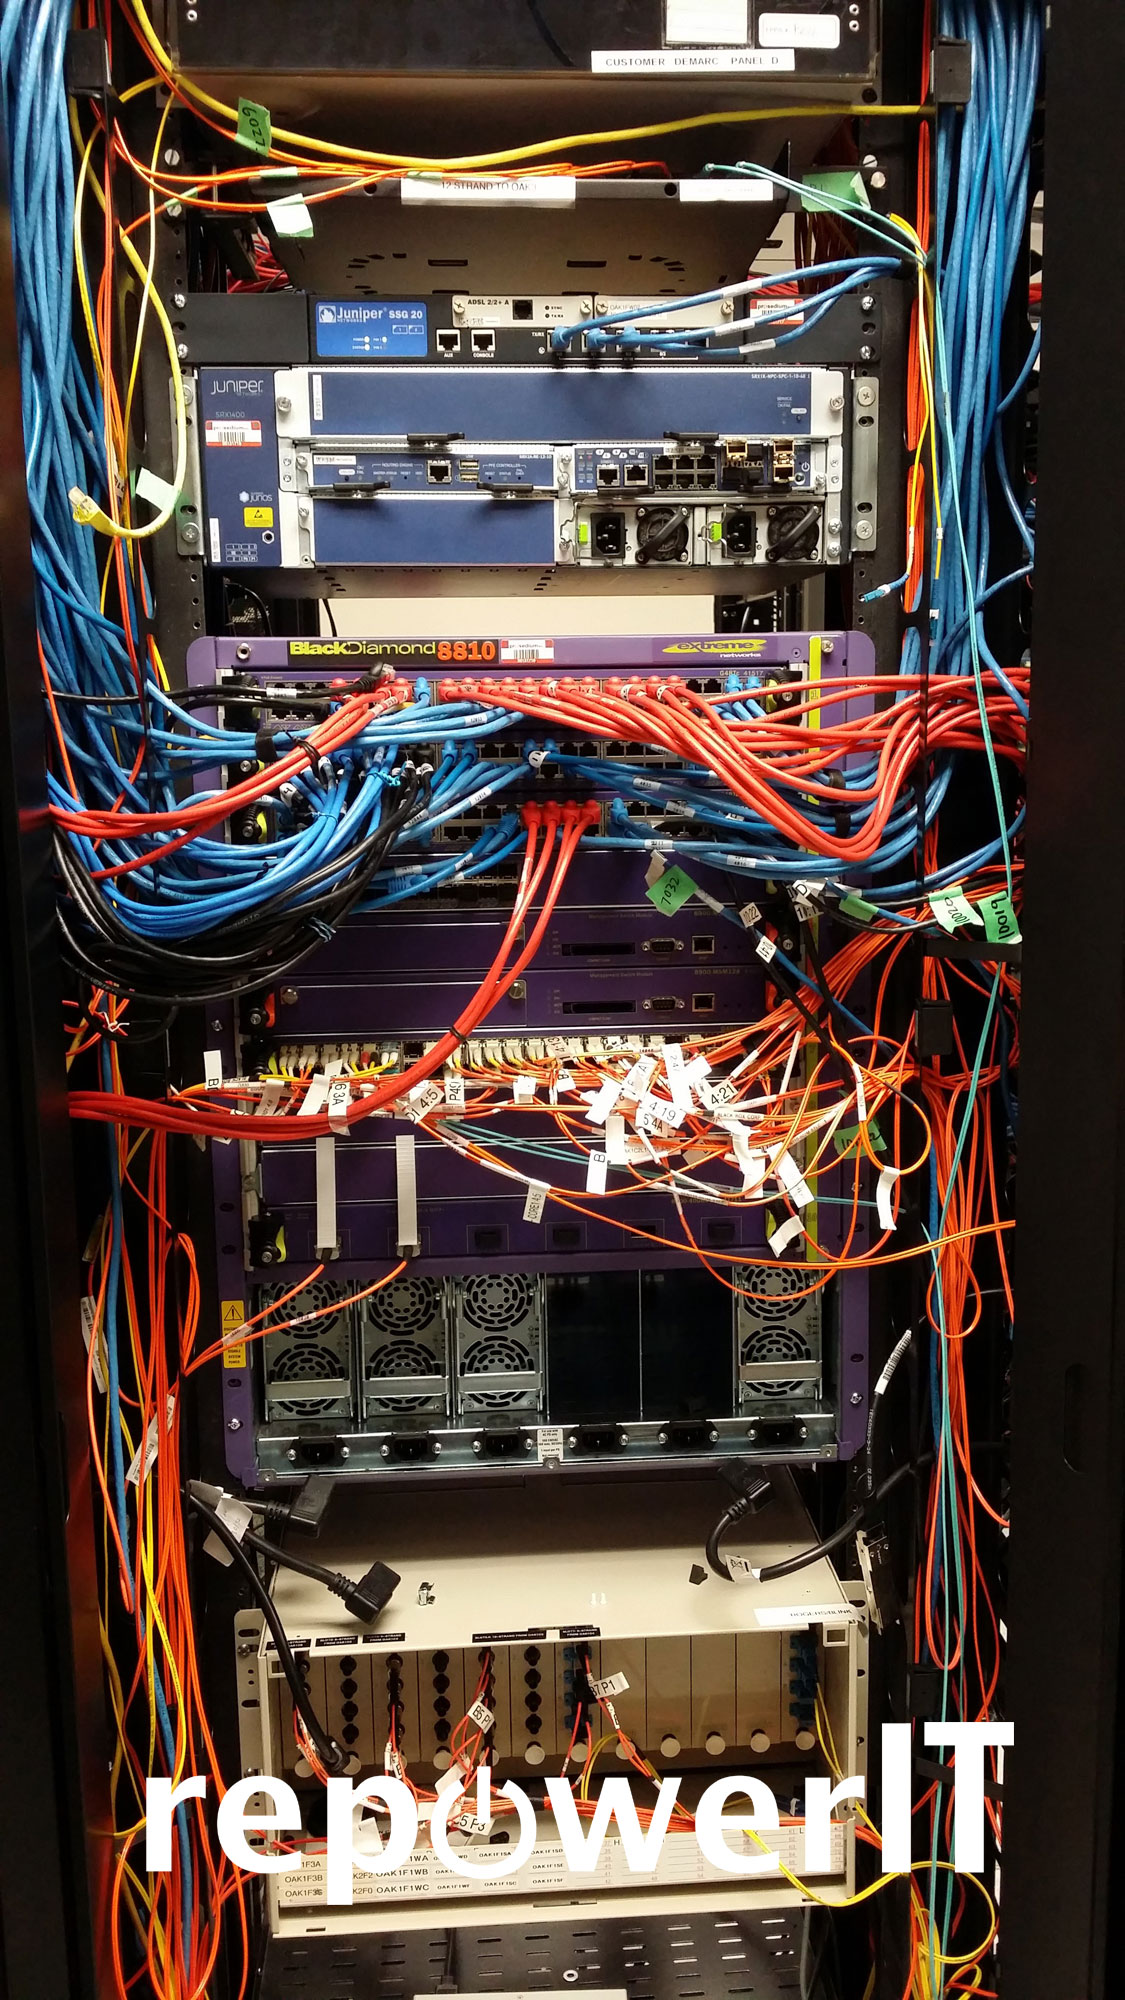 Buy & Sell Used IT Equipment - Datacenter Liquidation